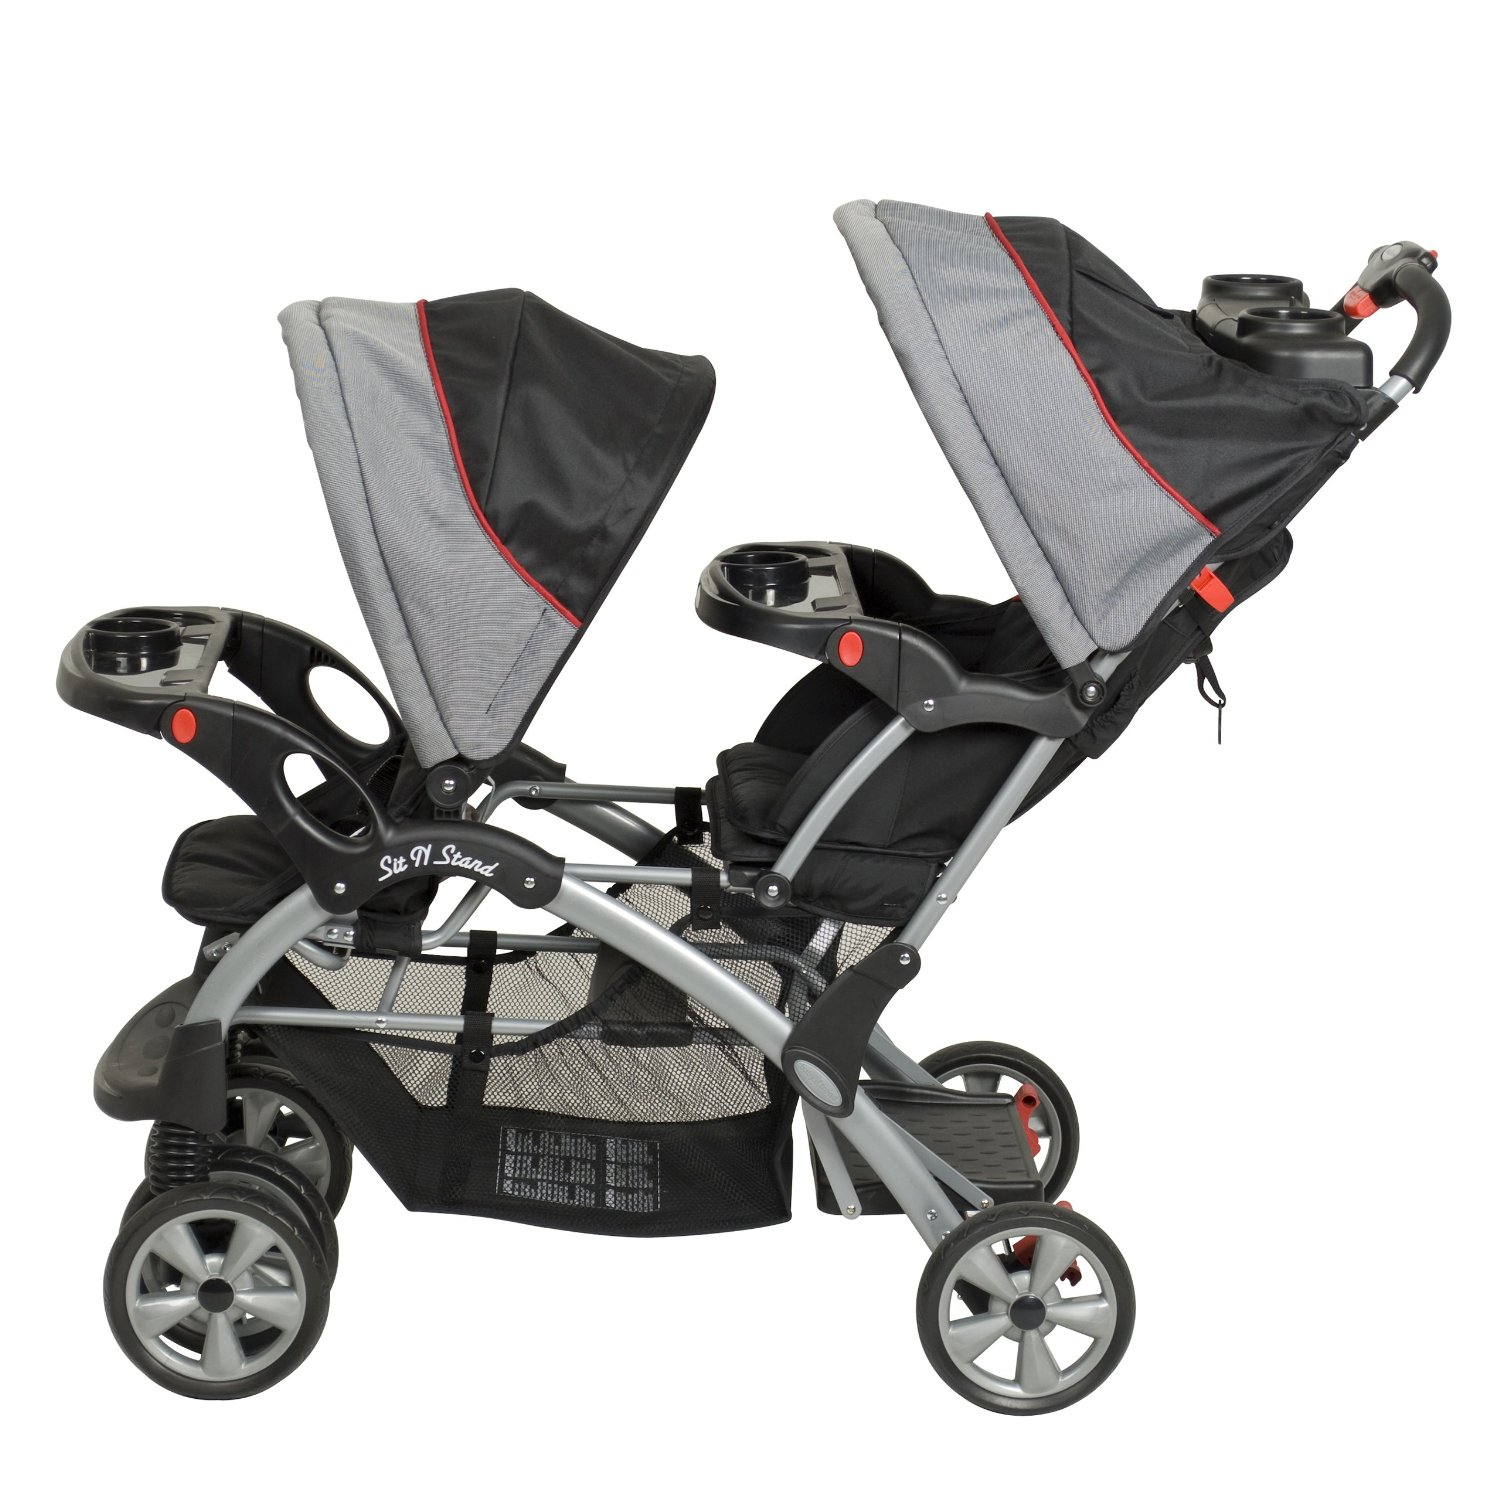 Baby trend jogging stroller and graco car seat baby strollers - Baby Strollers Near You Baby Trend Millennium Stroller